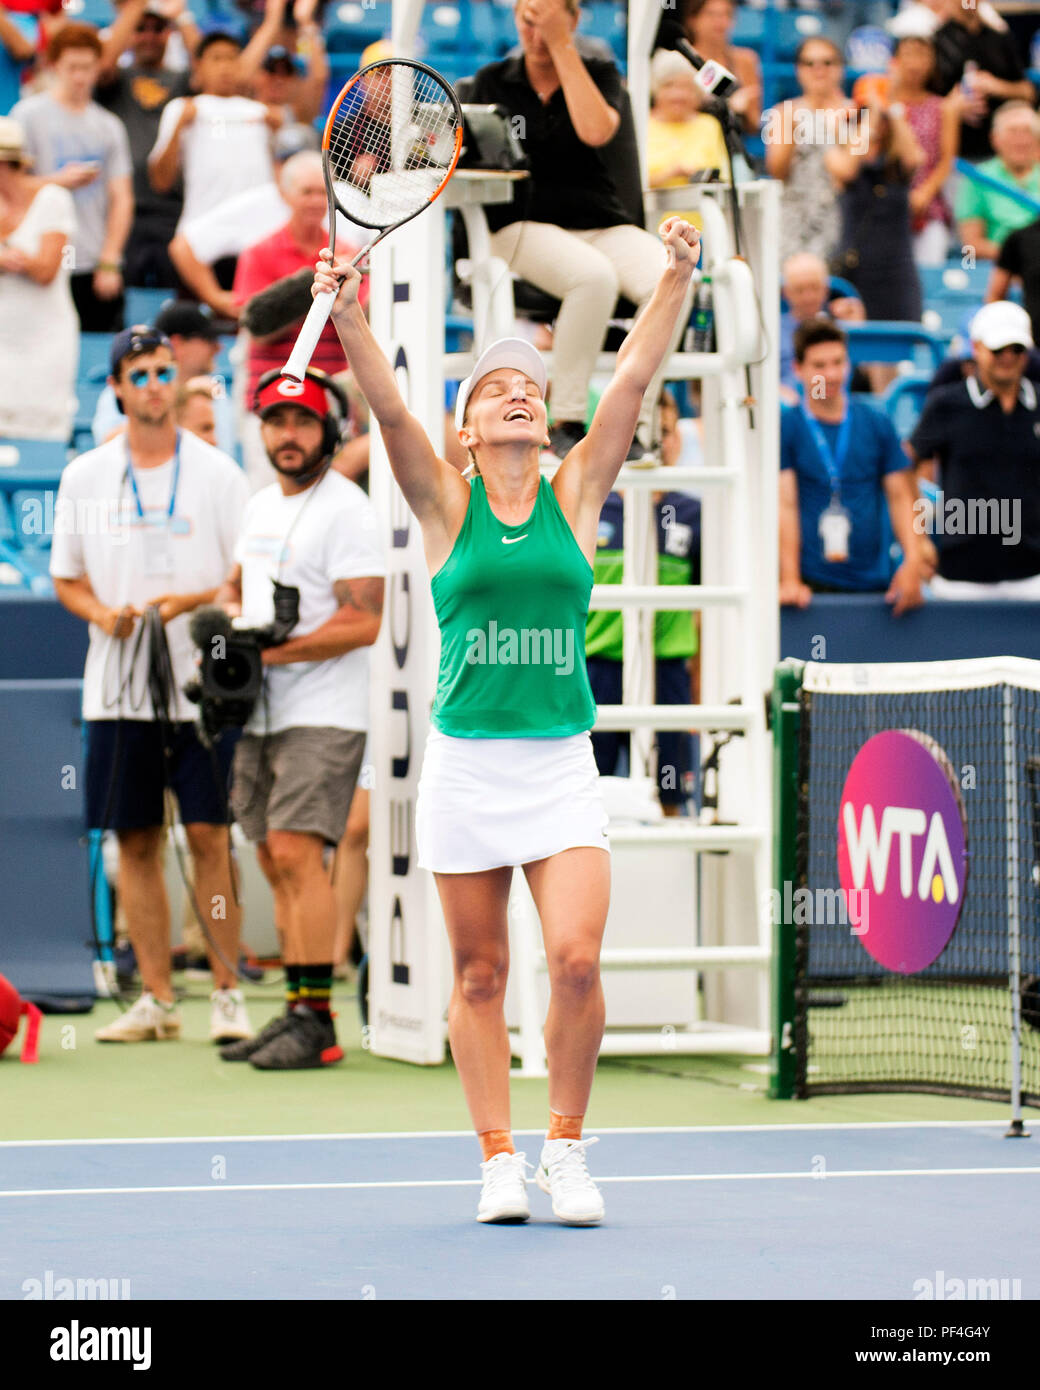 August 2018: Simona Halep (ROU) celebrates her victory against Aryna Sabalenka (BLR) at the Western Southern Open in Mason, Ohio, USA. Brent Clark/Alamy Live News - Stock Image